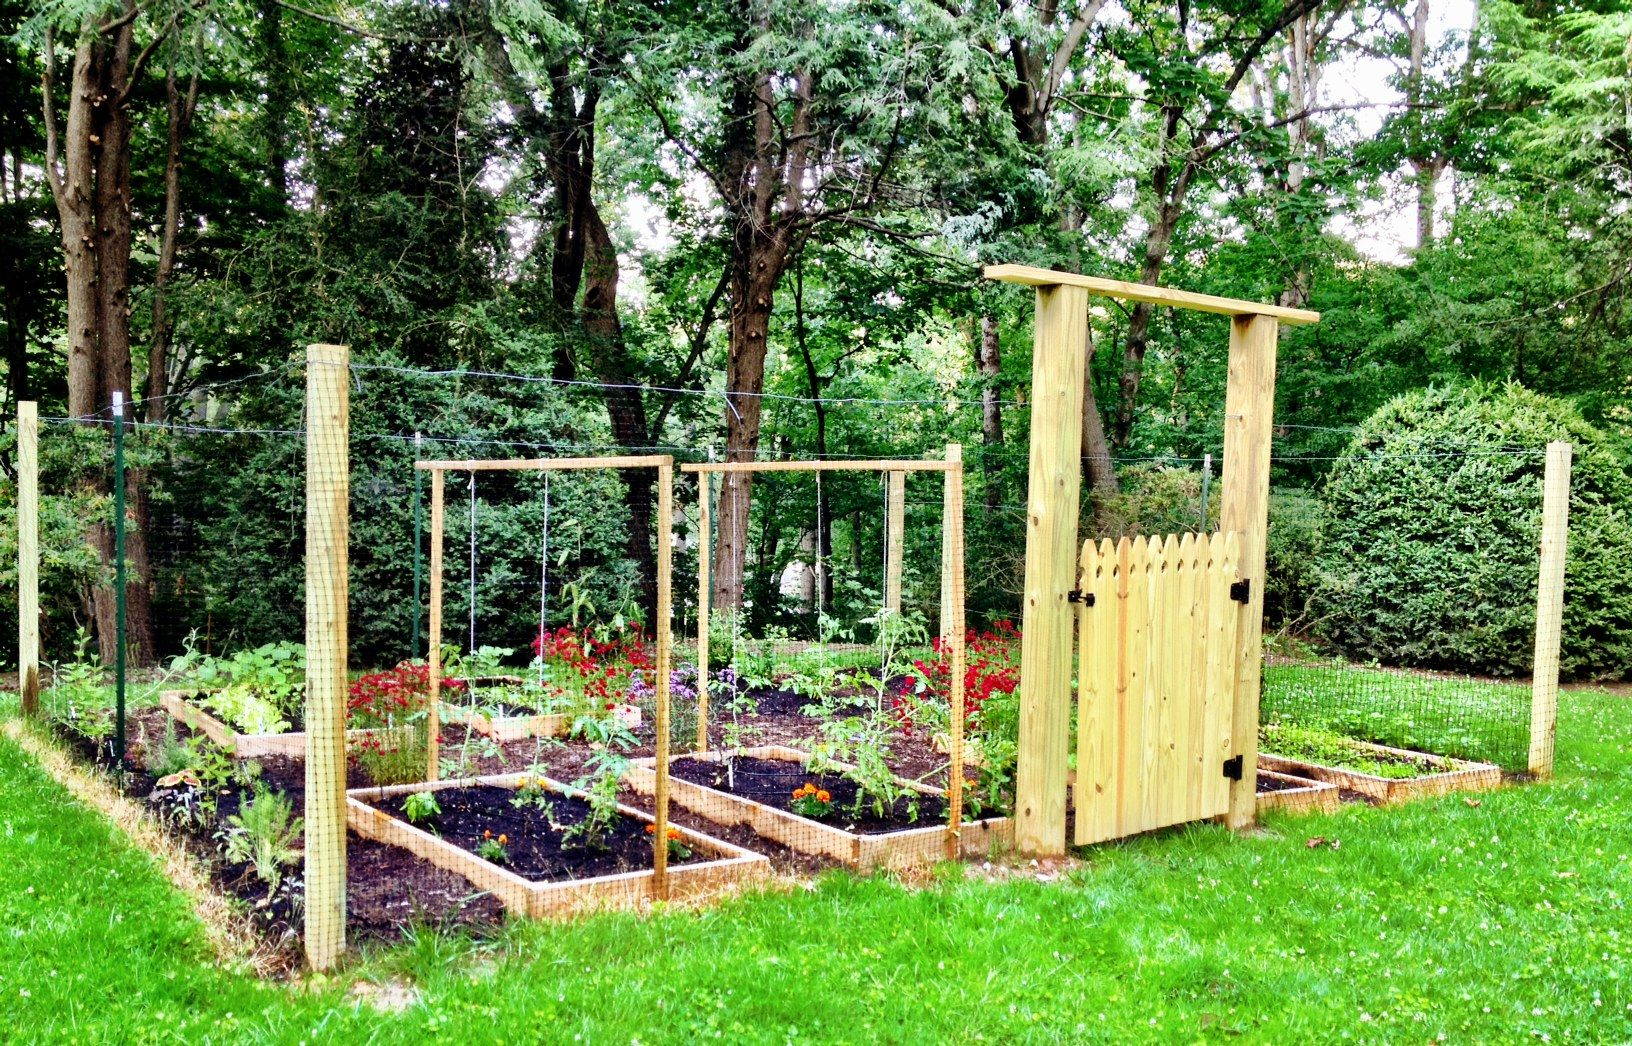 Deer Fence Gate raised beds Exactly what I want Gardening